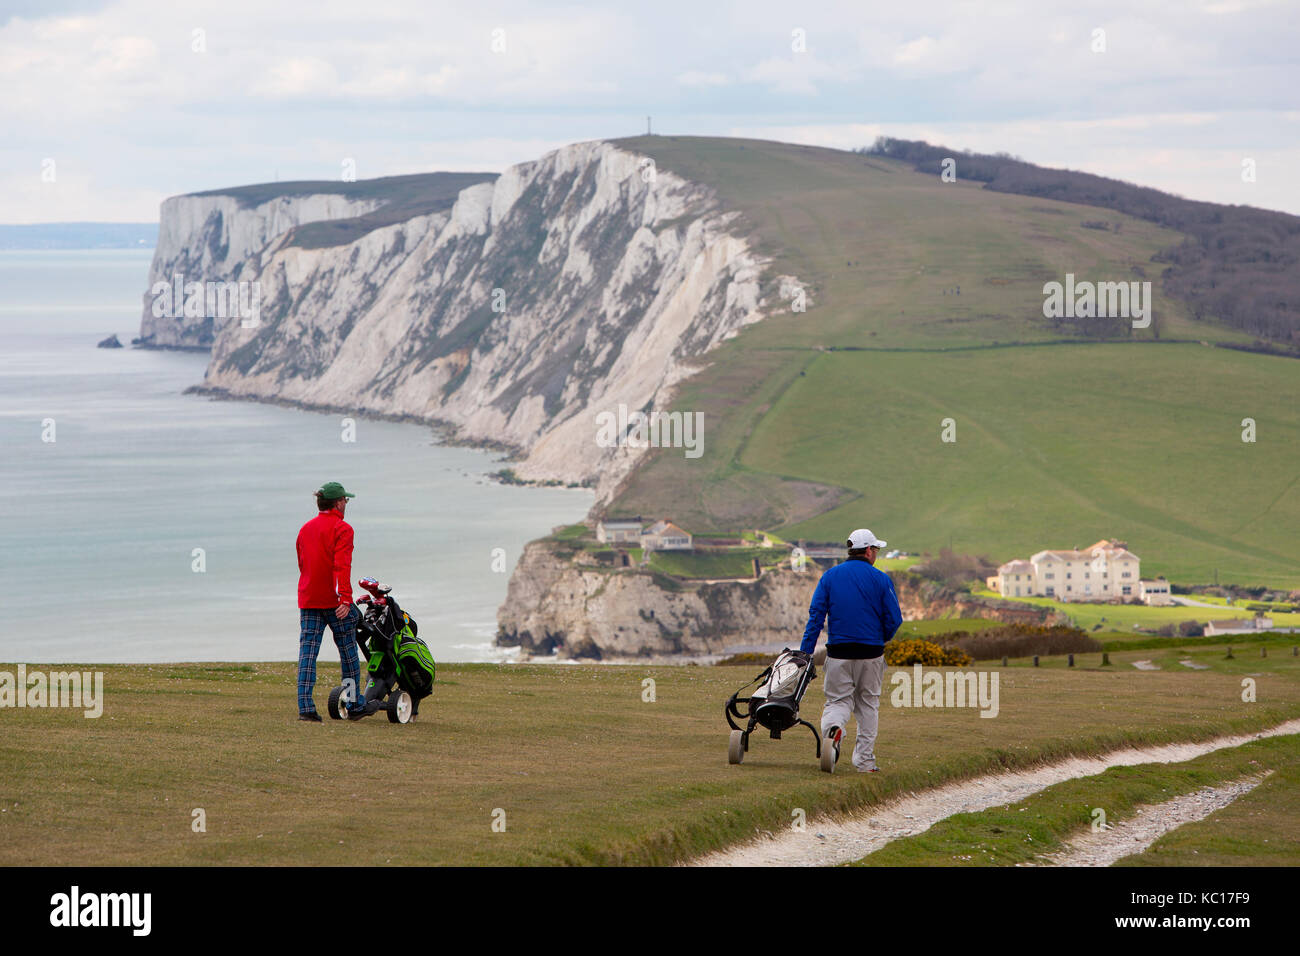 Golf, playing, course, links, downs, down, players, twosome, two, double, club, clubs, trolley, electric, cart, - Stock Image